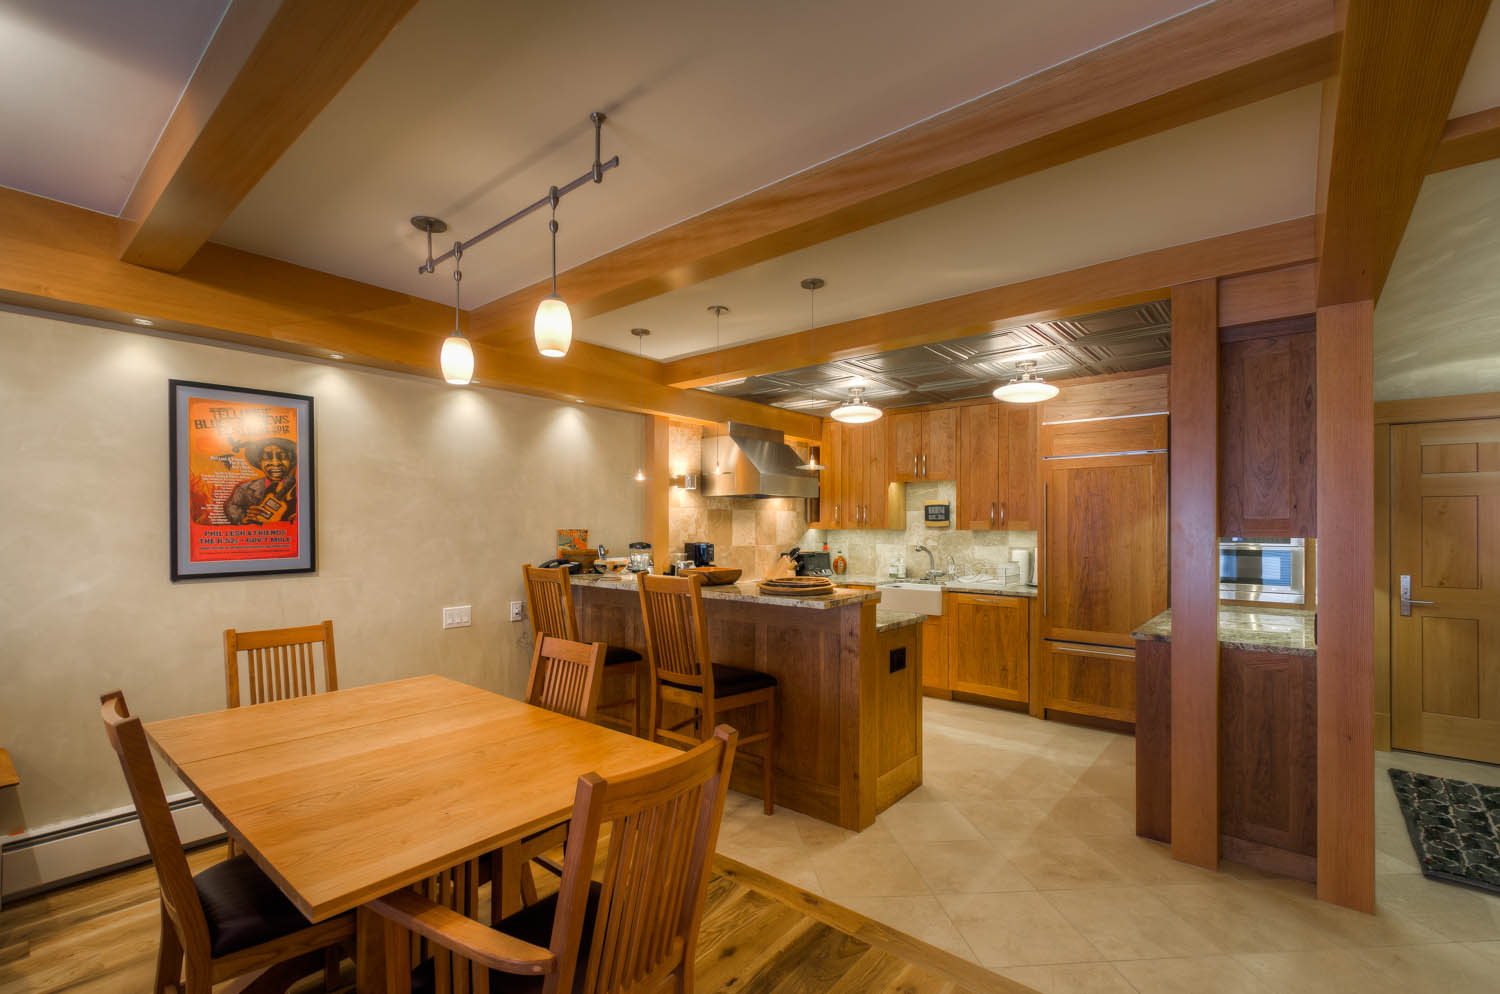 Breakfast Bar with Bar Stools, Dining Table, and Chairs